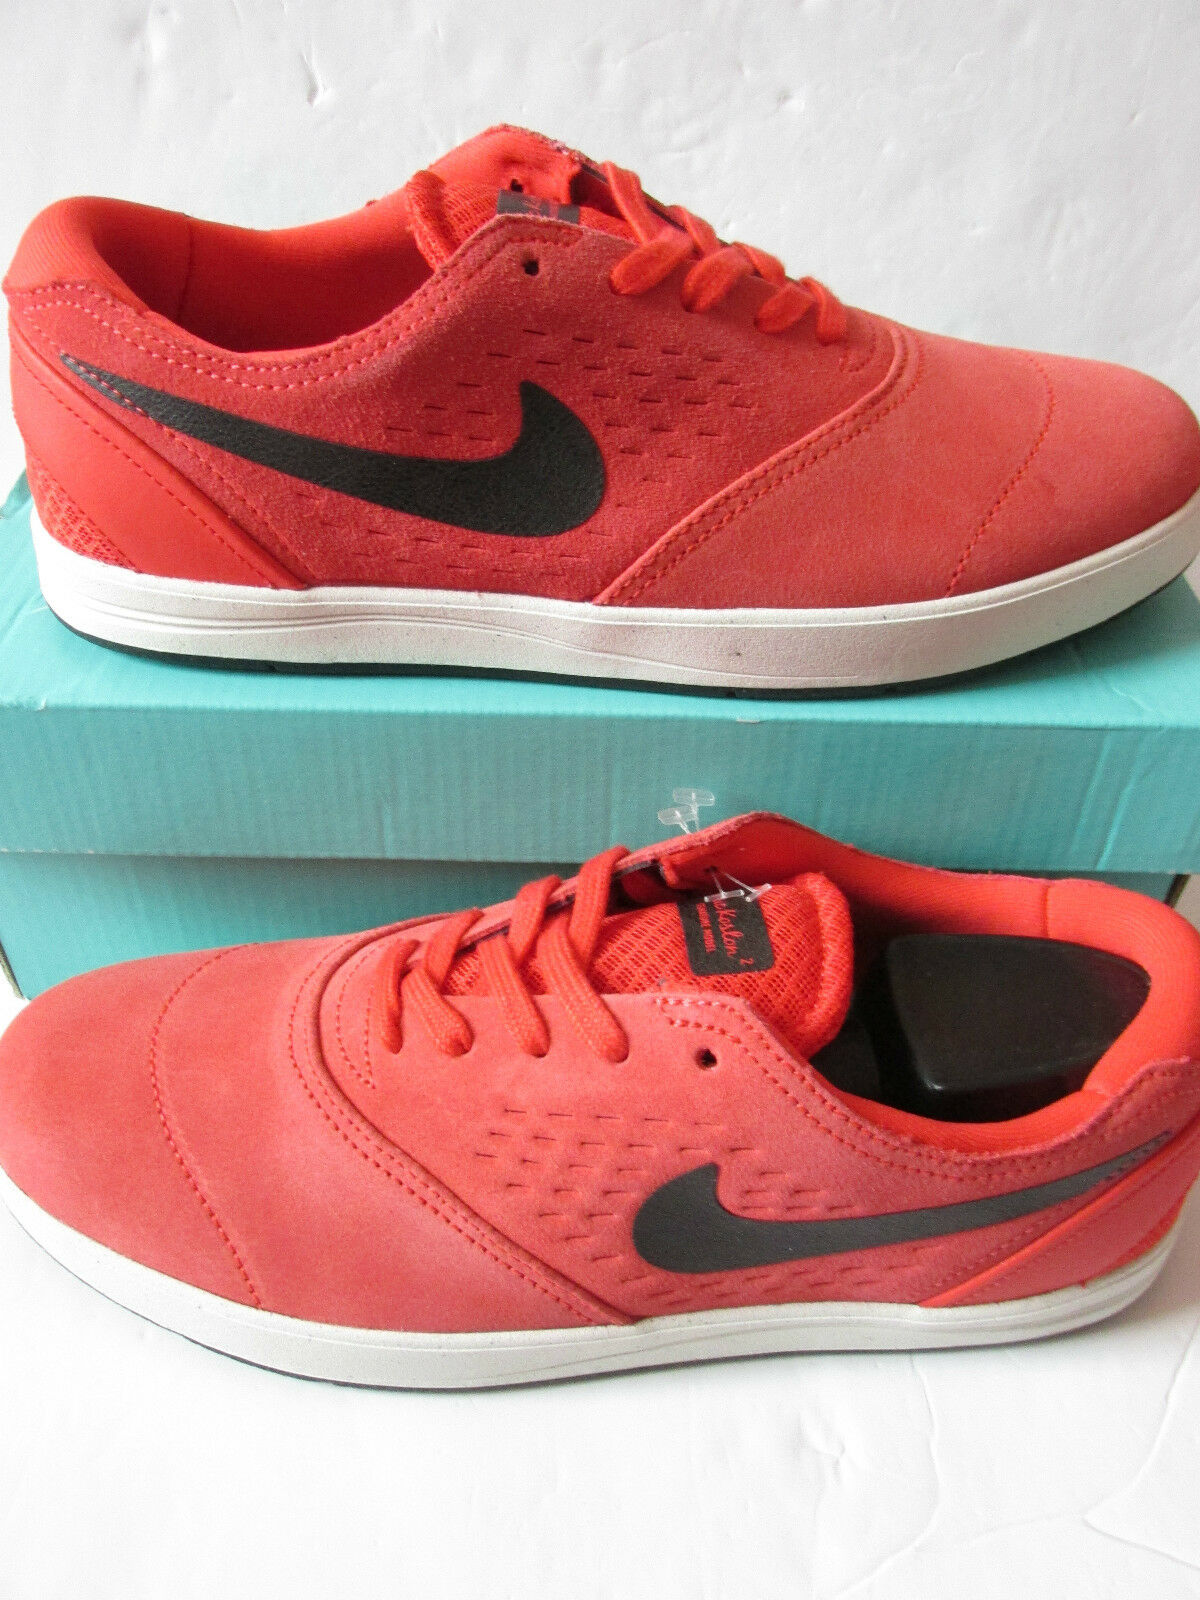 Nike Sb Eric Koston 2 Signature Modal Baskets Hommes 580418 603 Baskets